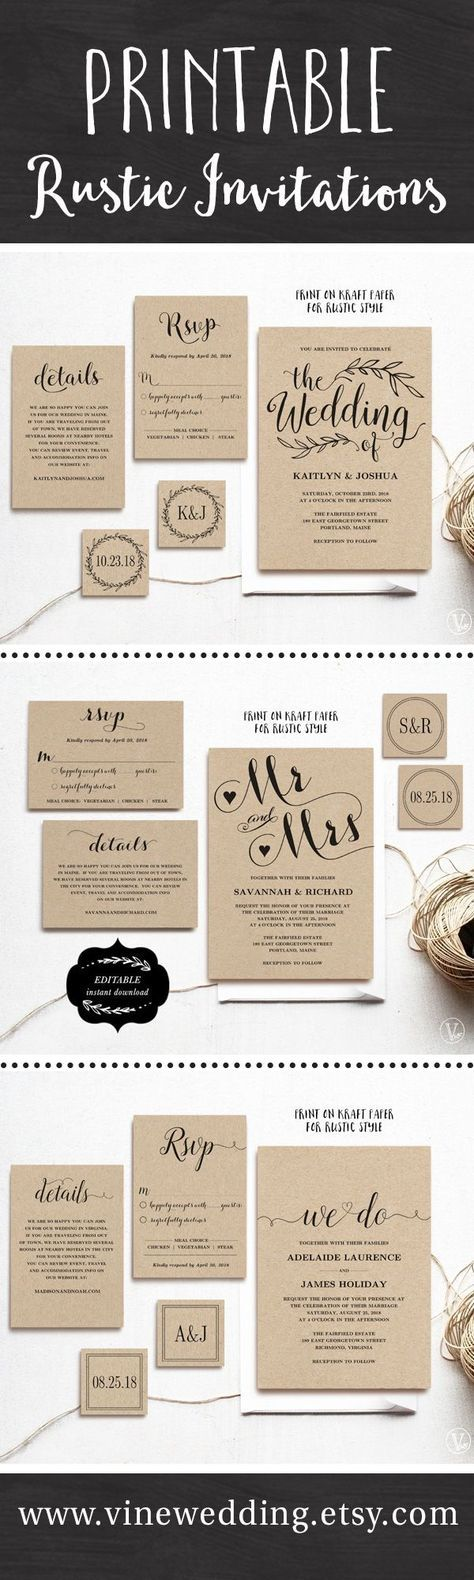 diy wedding invitations best photos - wedding diy  - cuteweddingideas.com